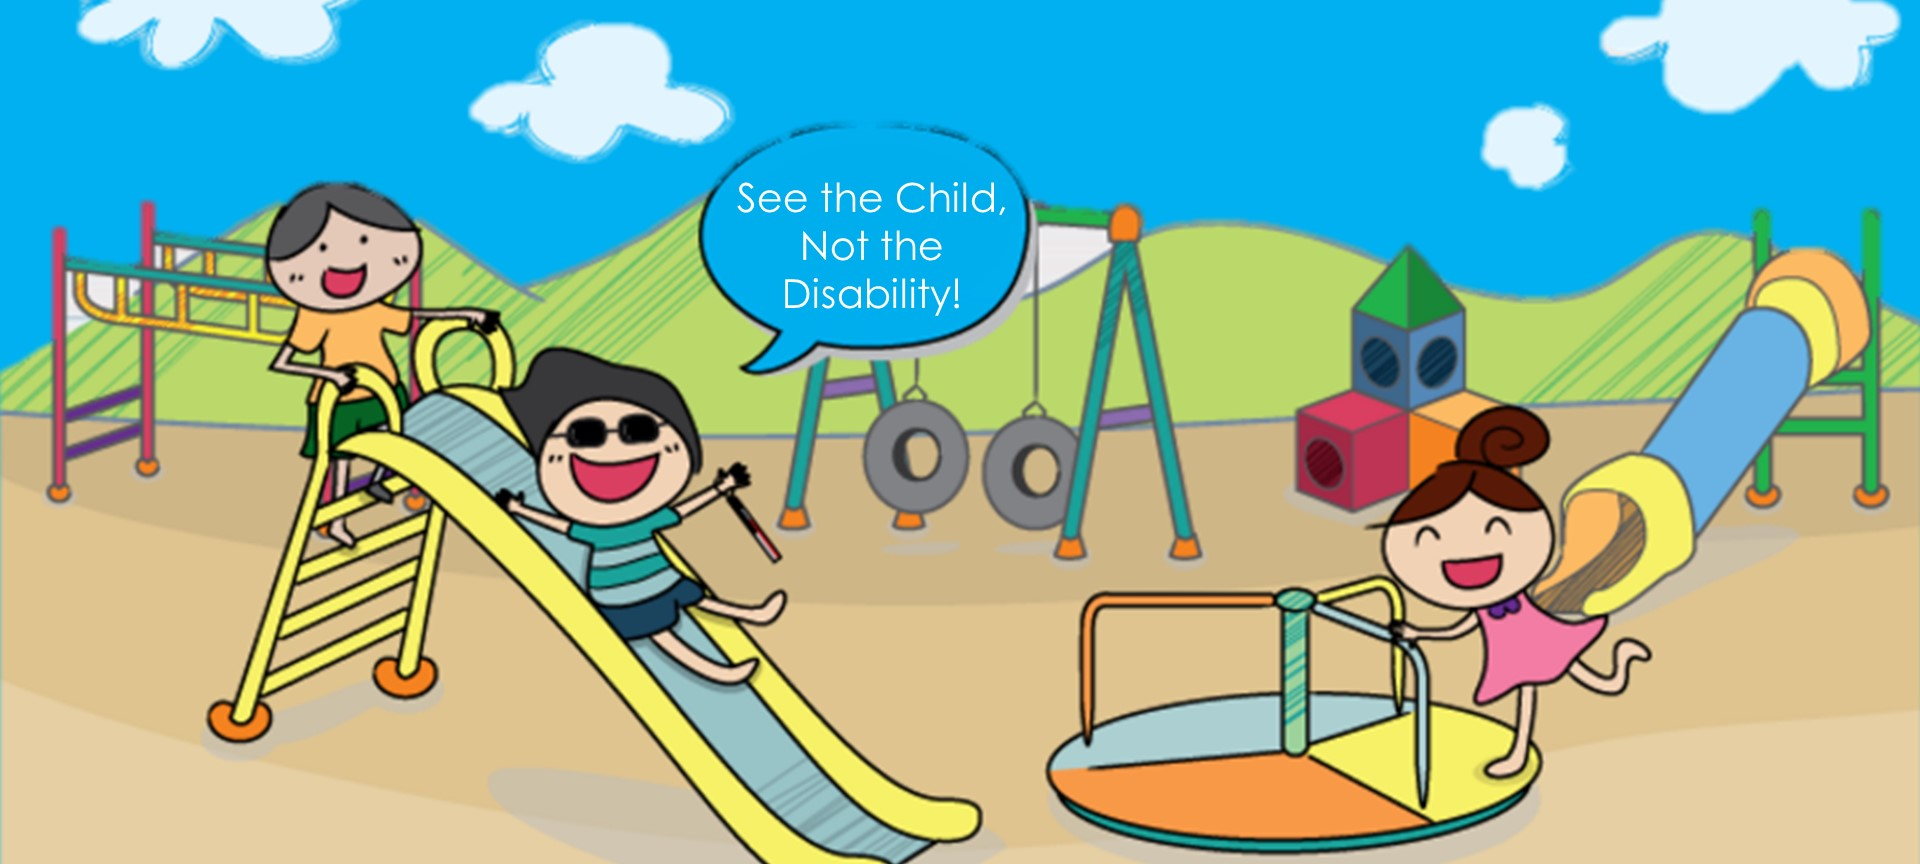 Seeing Child Not Disability >> See The Child Not The Disability Children4change